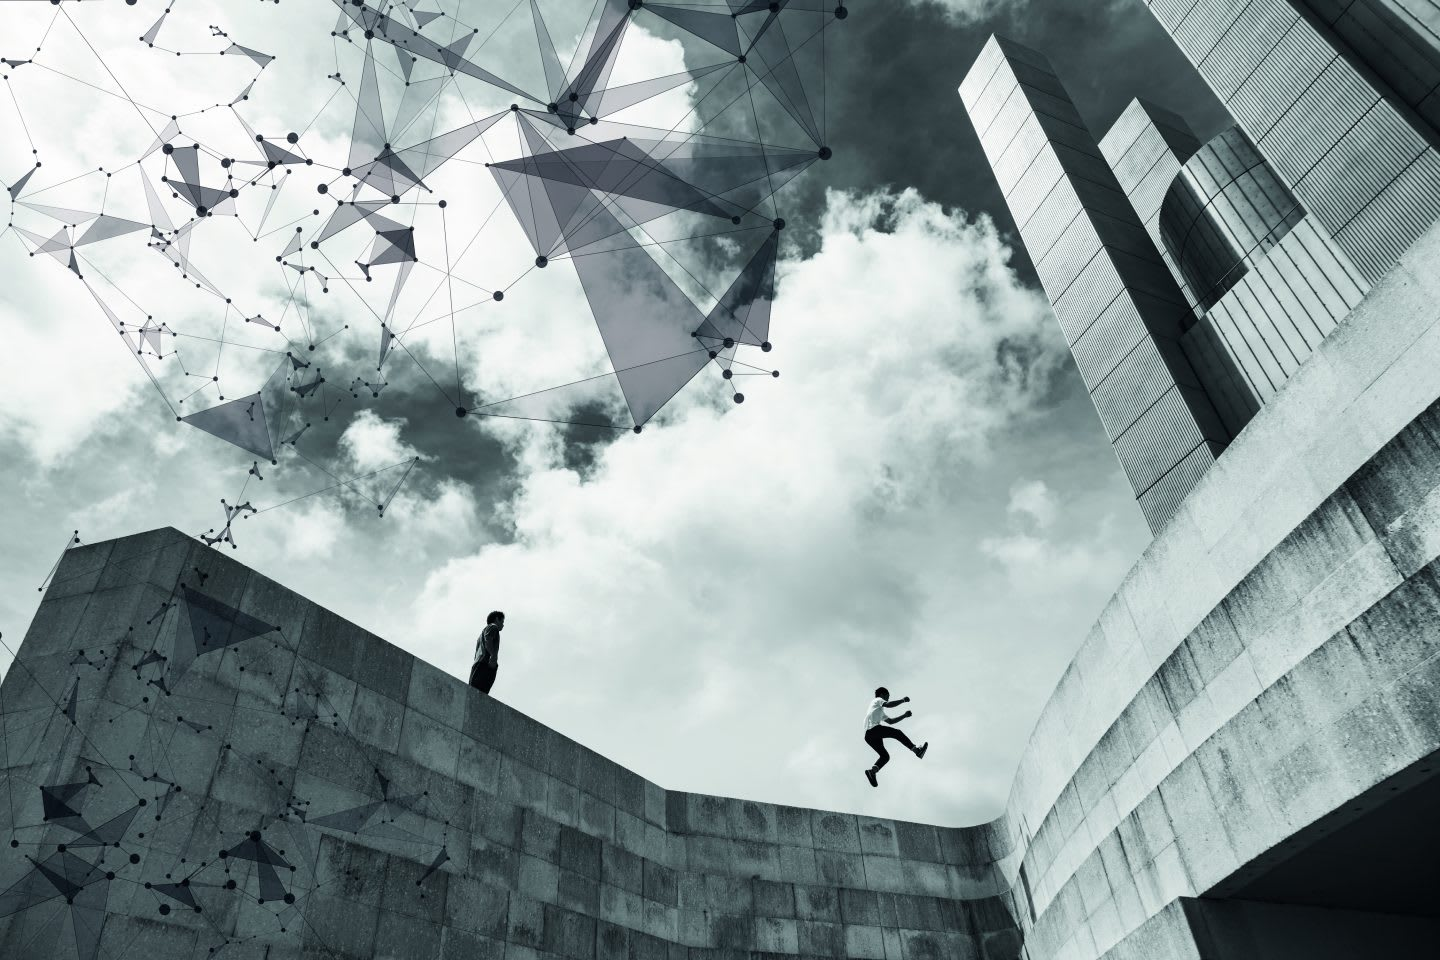 A man is leaping between two high walls of a building with a the sky filled with abstract doodles to illustrate the athlete's out-of-the-box thinking.